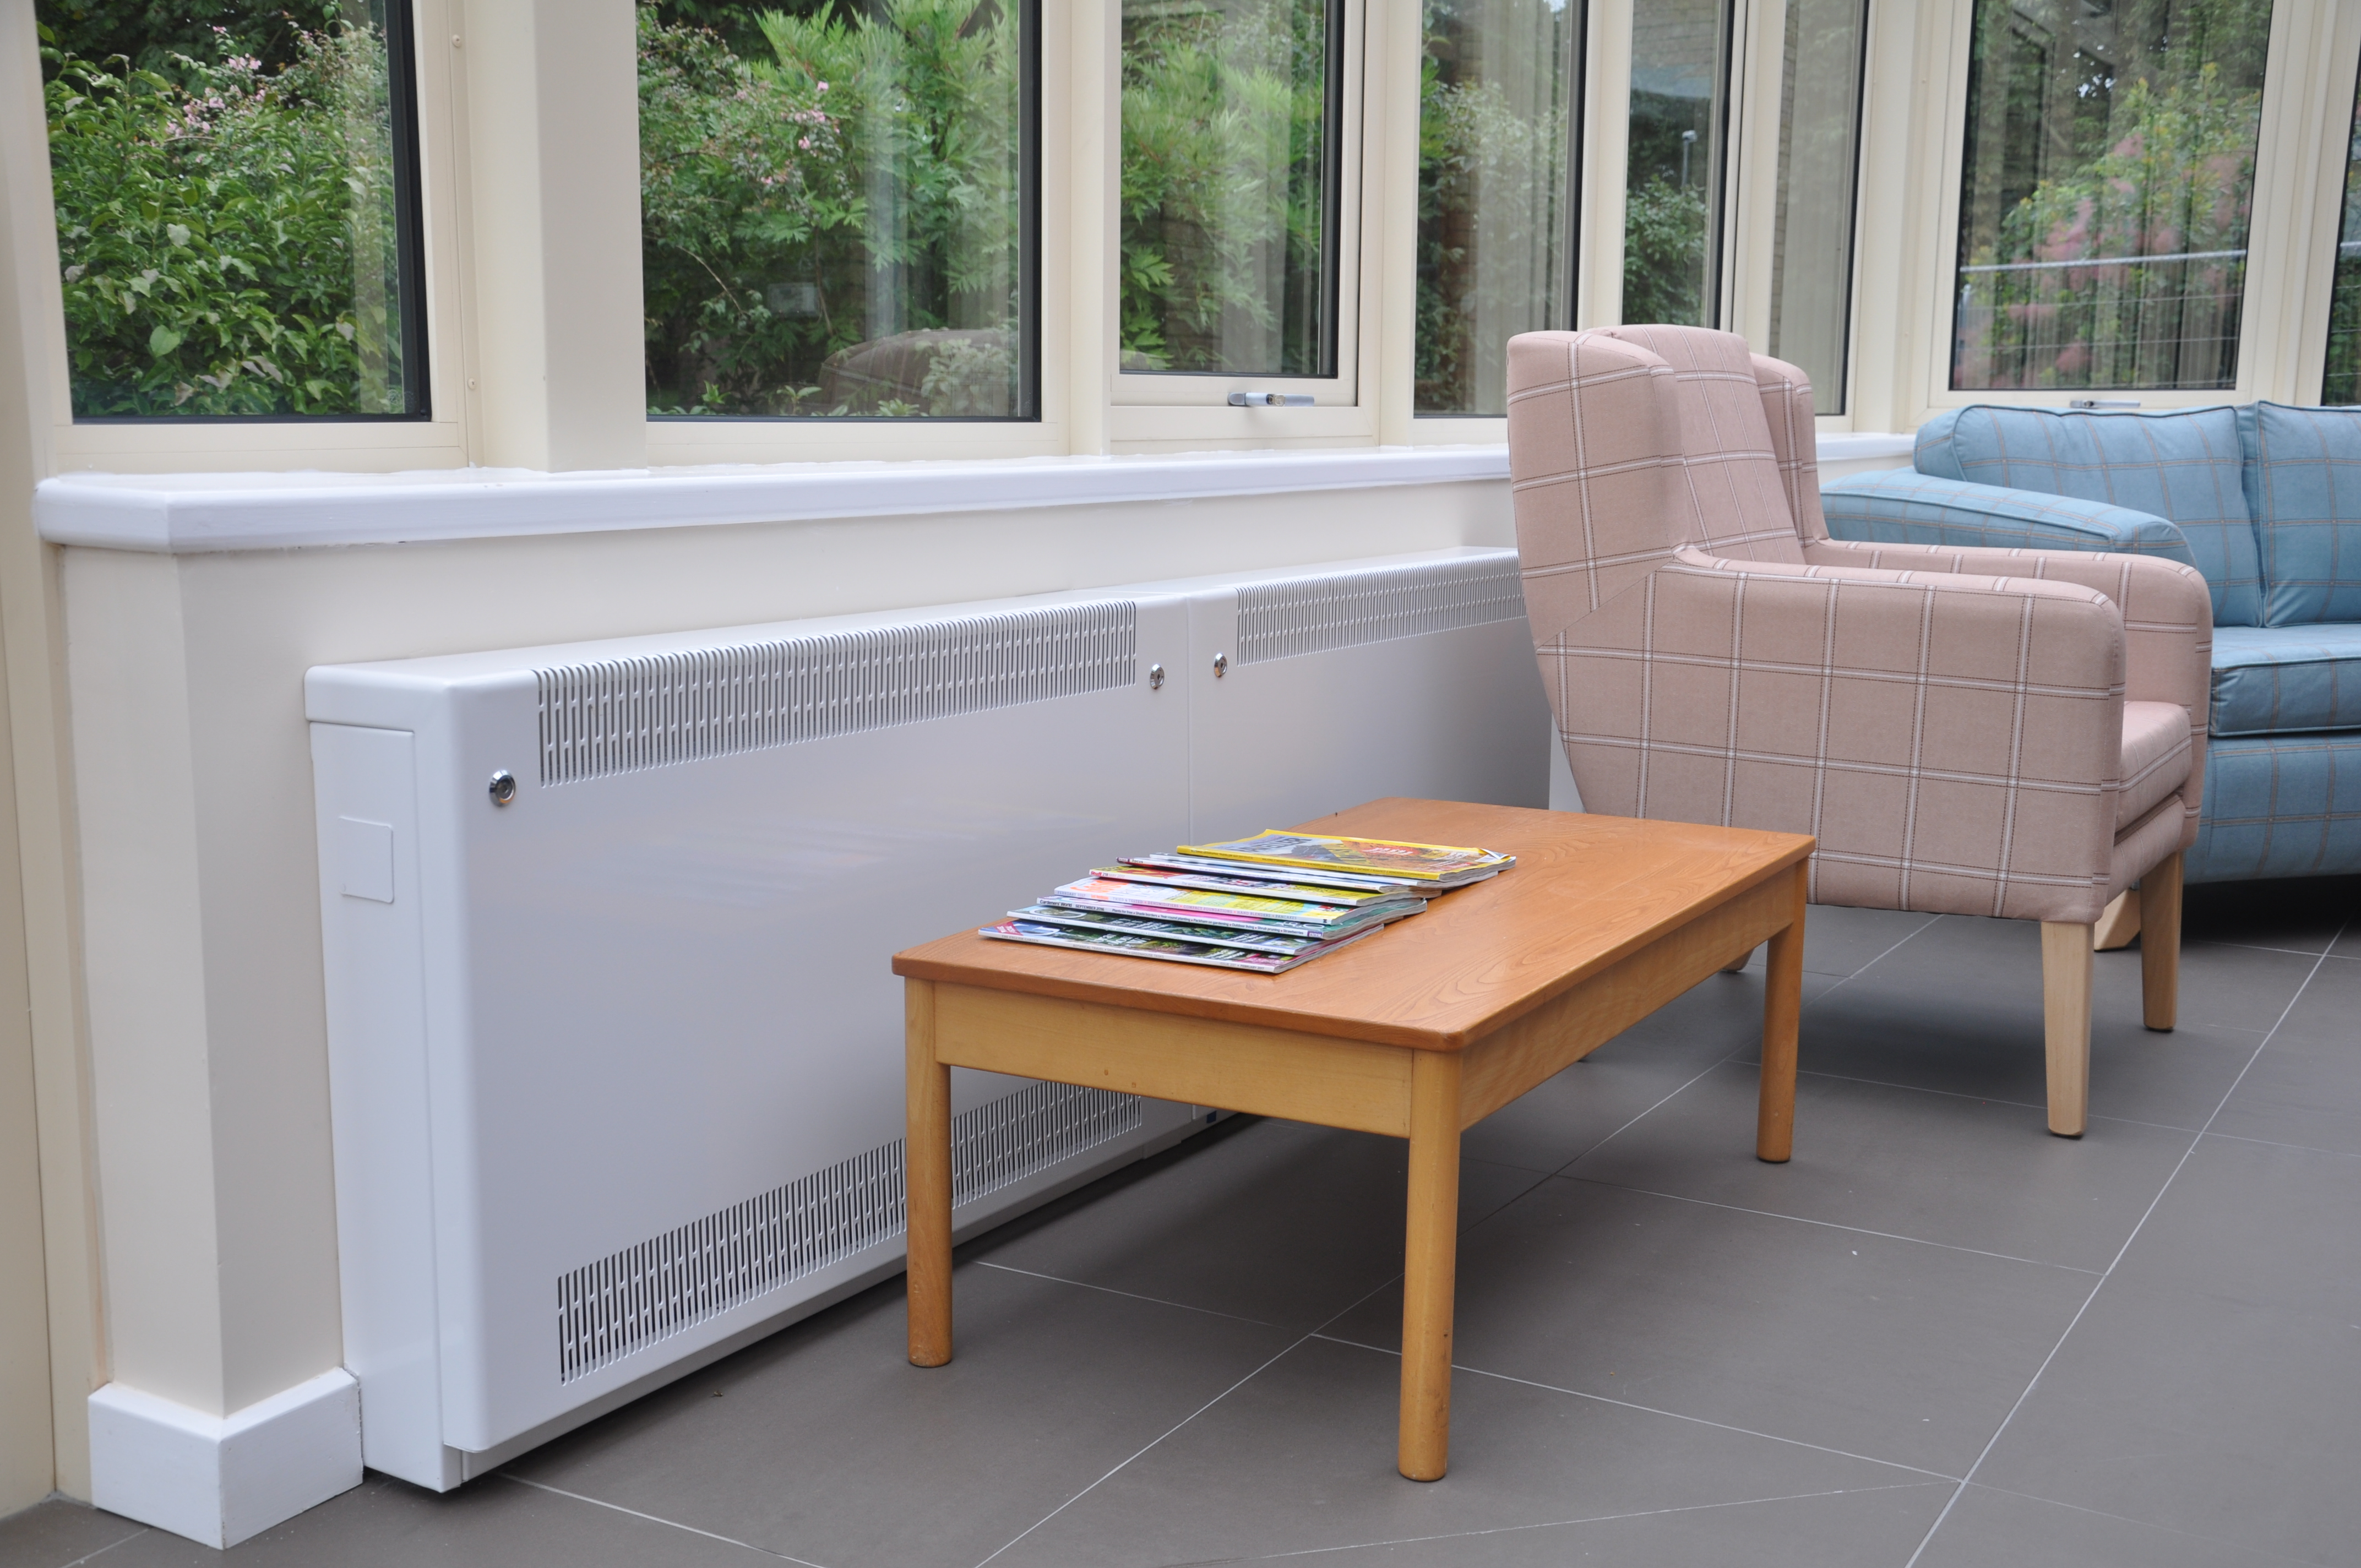 LST radiators in care homes